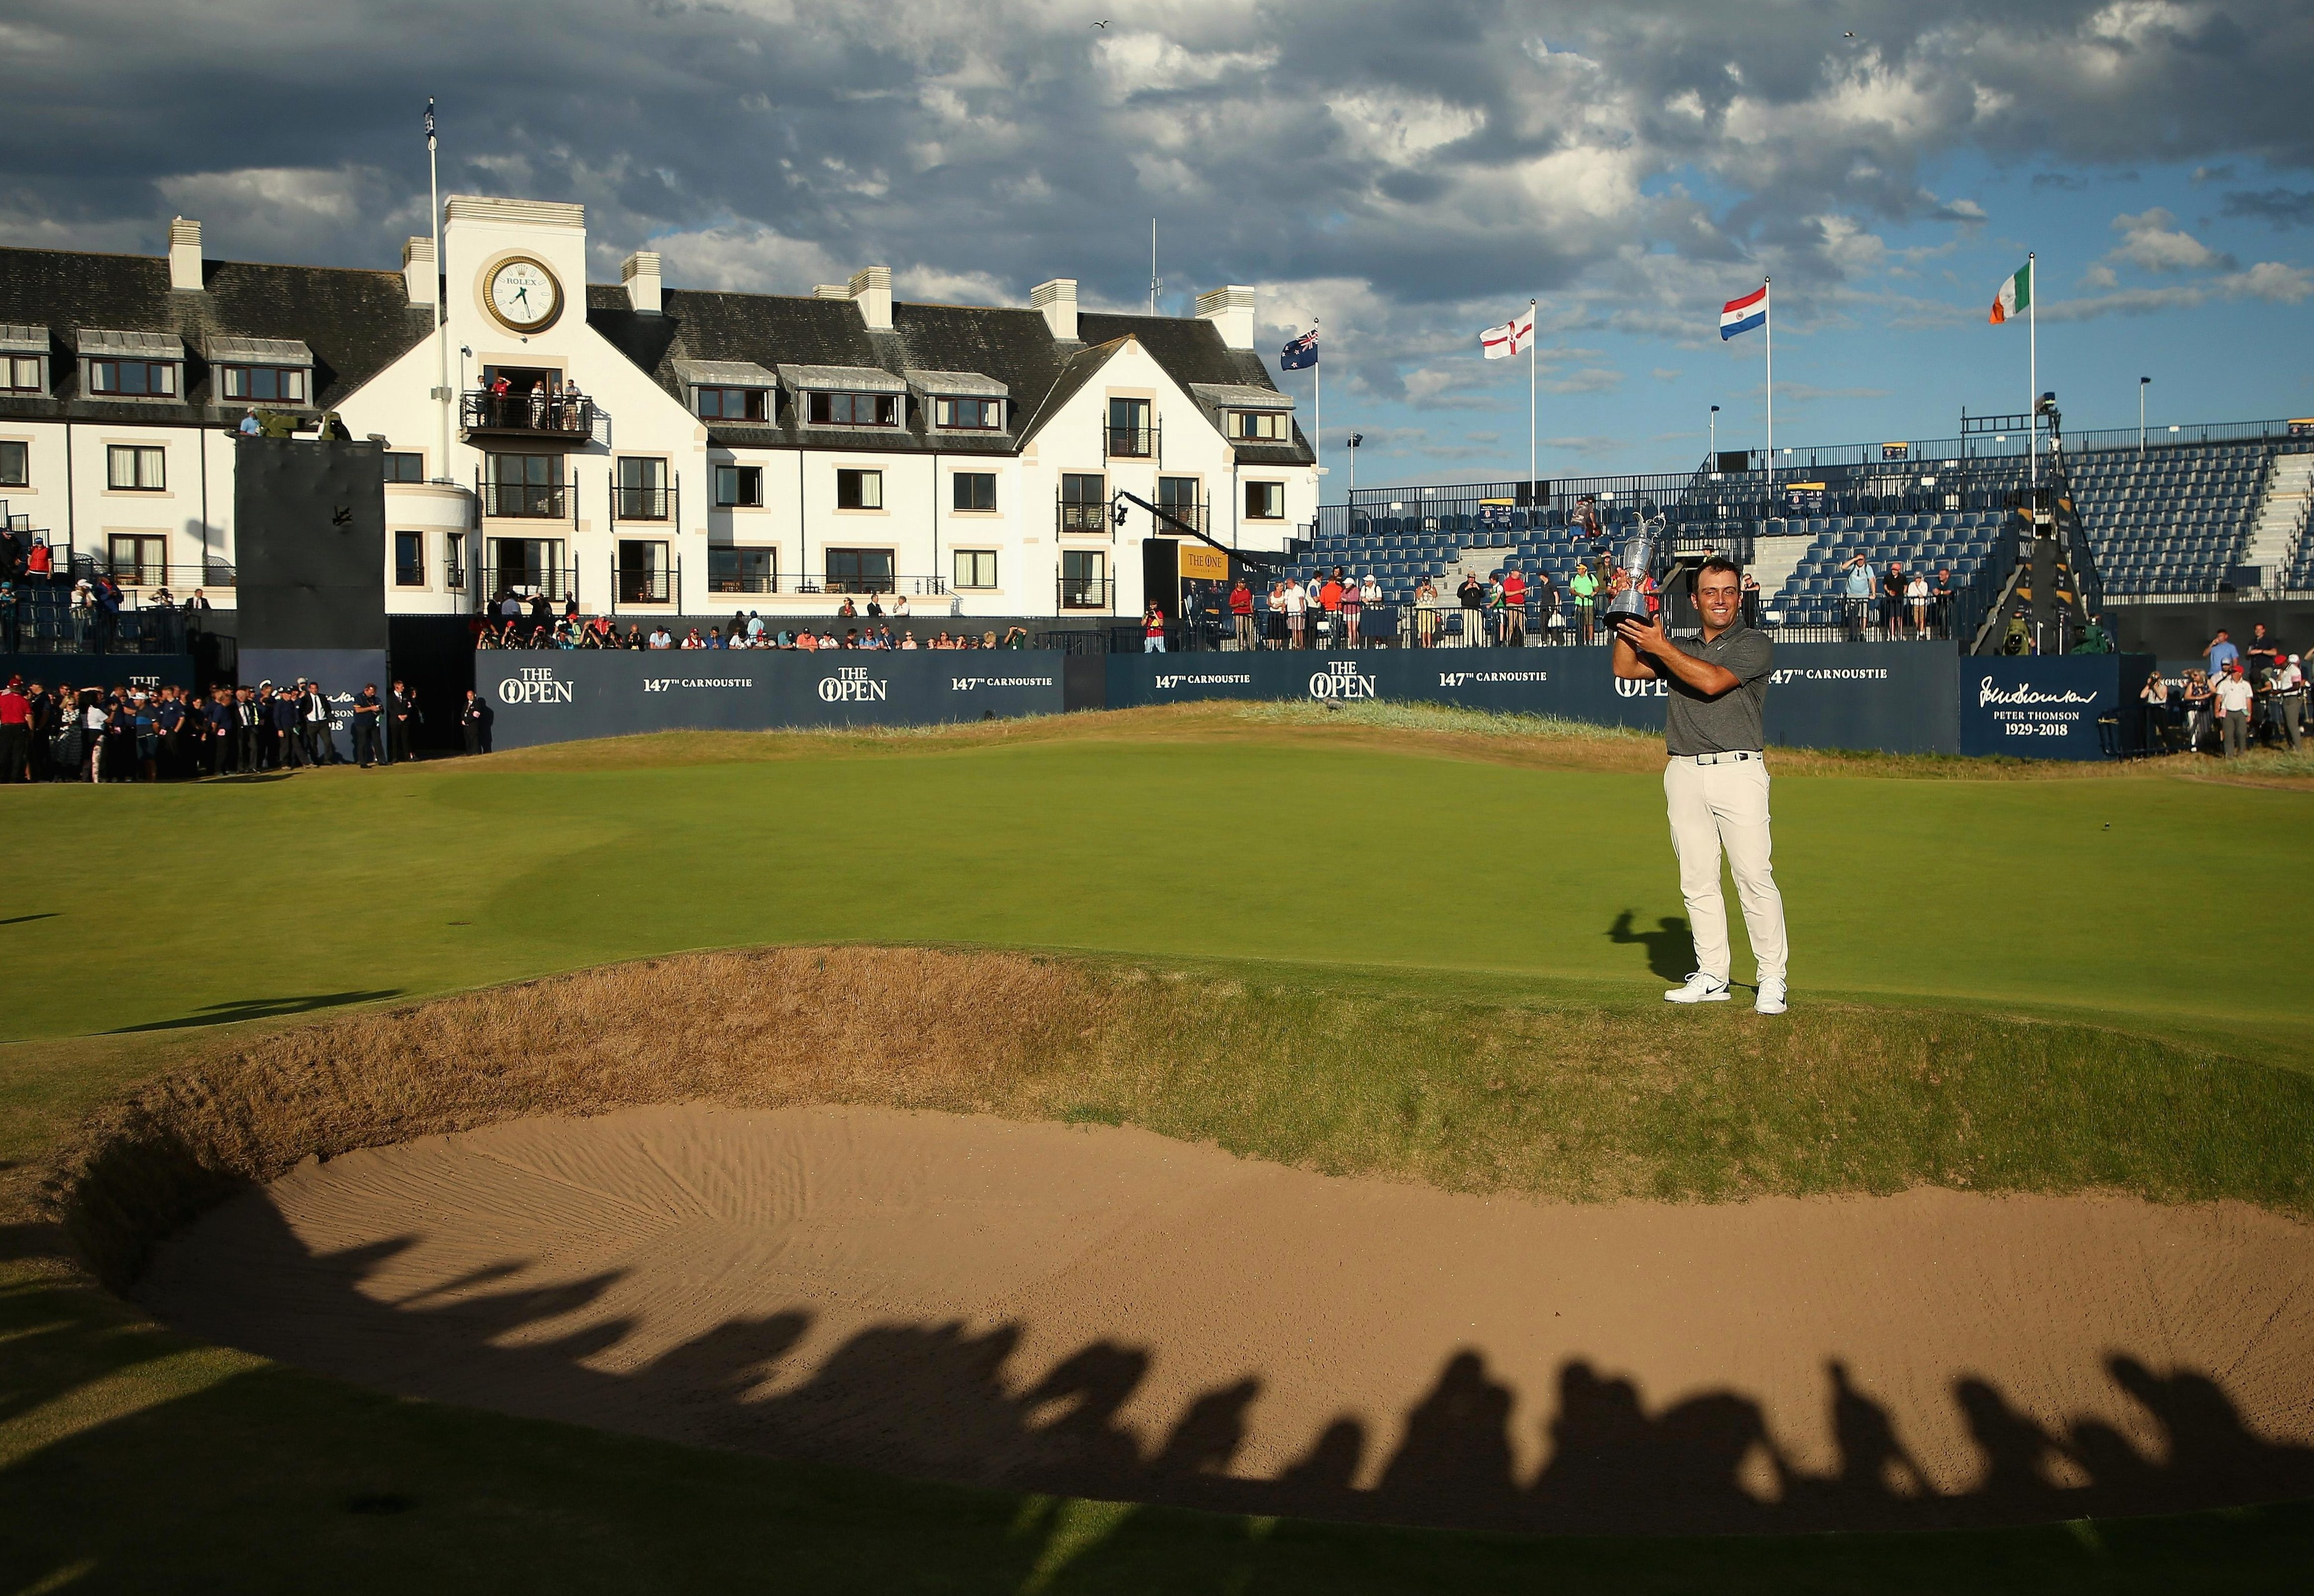 West Ham supporter Francesco Molinari came out of the shadows to become the first Italian to win a Major, finishing two shots clear of four players at Carnoustie